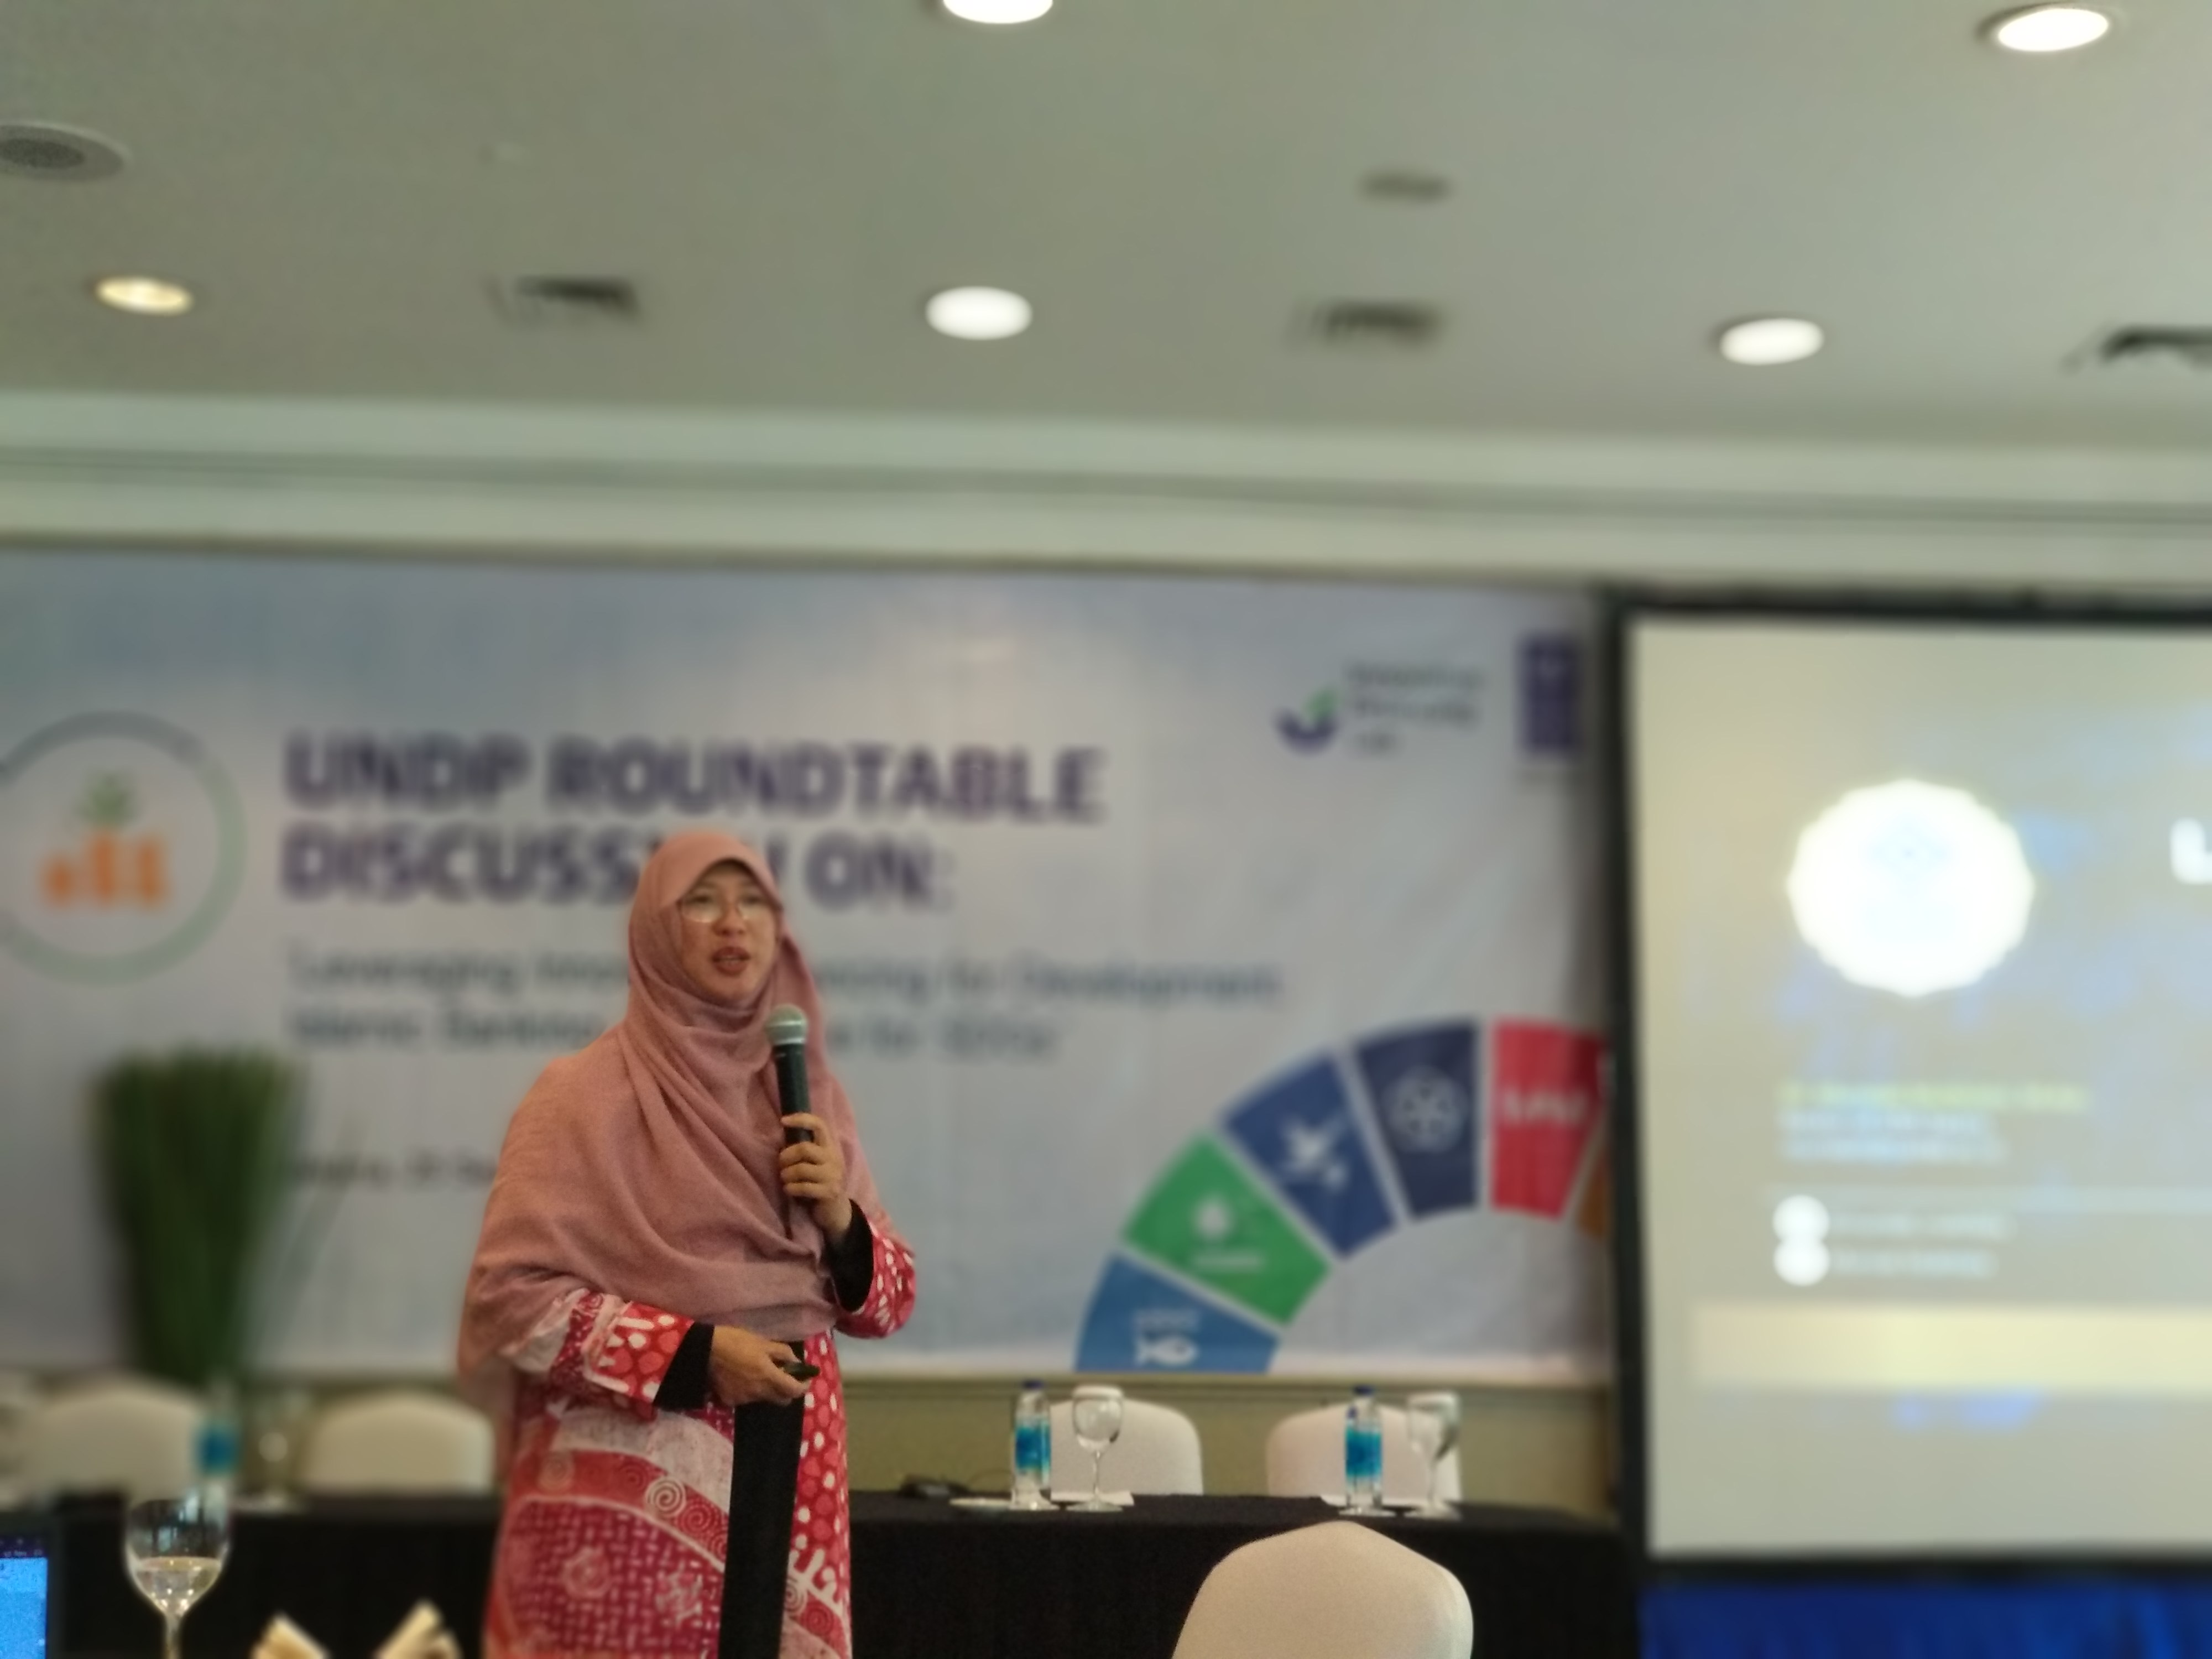 Sharing STEI Tazkia pada Event UNDP (United Nations Development Program) Indonesia.